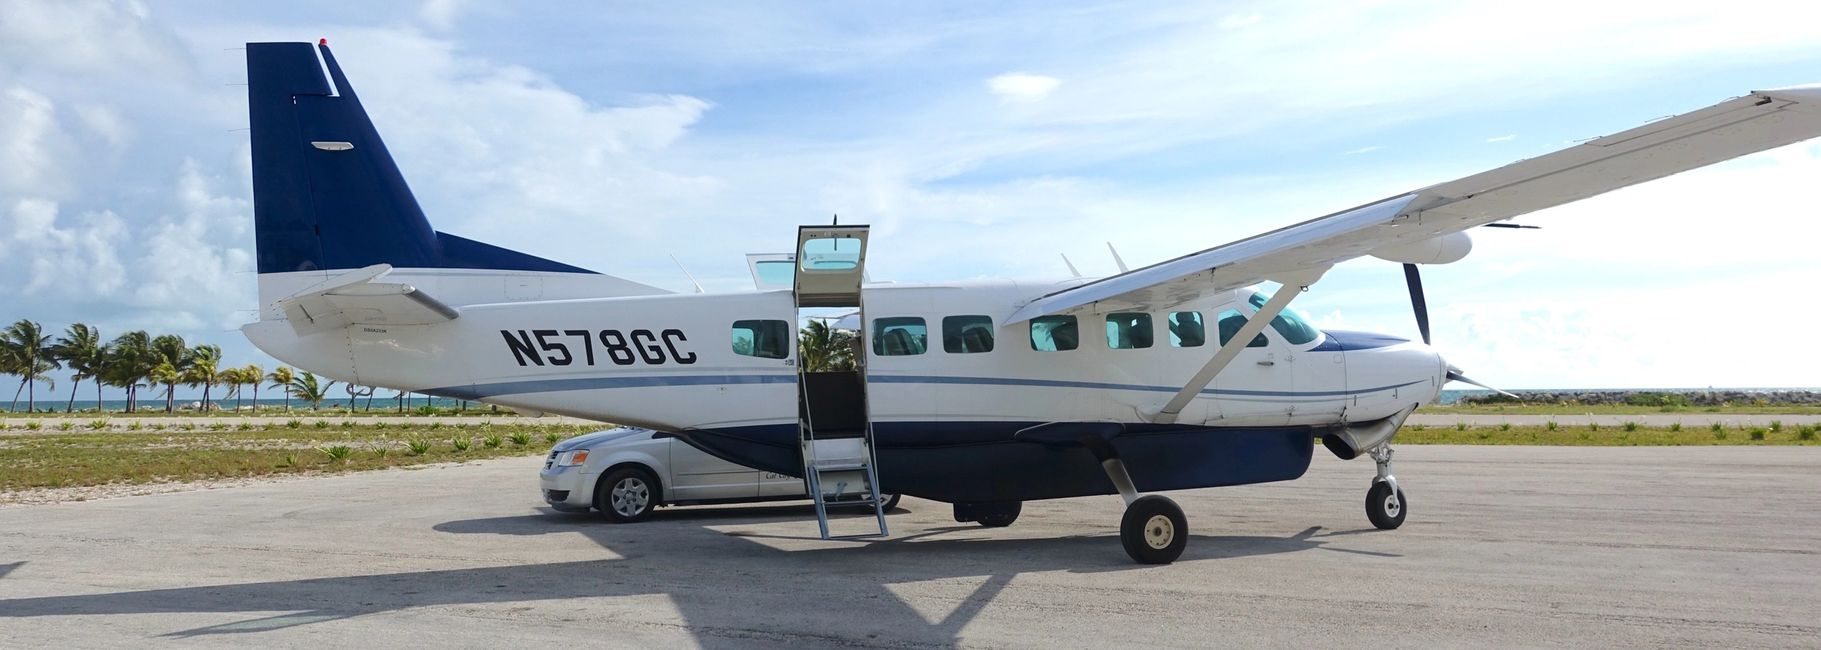 About JetsetPrivate Air. Charter flights. Cessna Caravan.